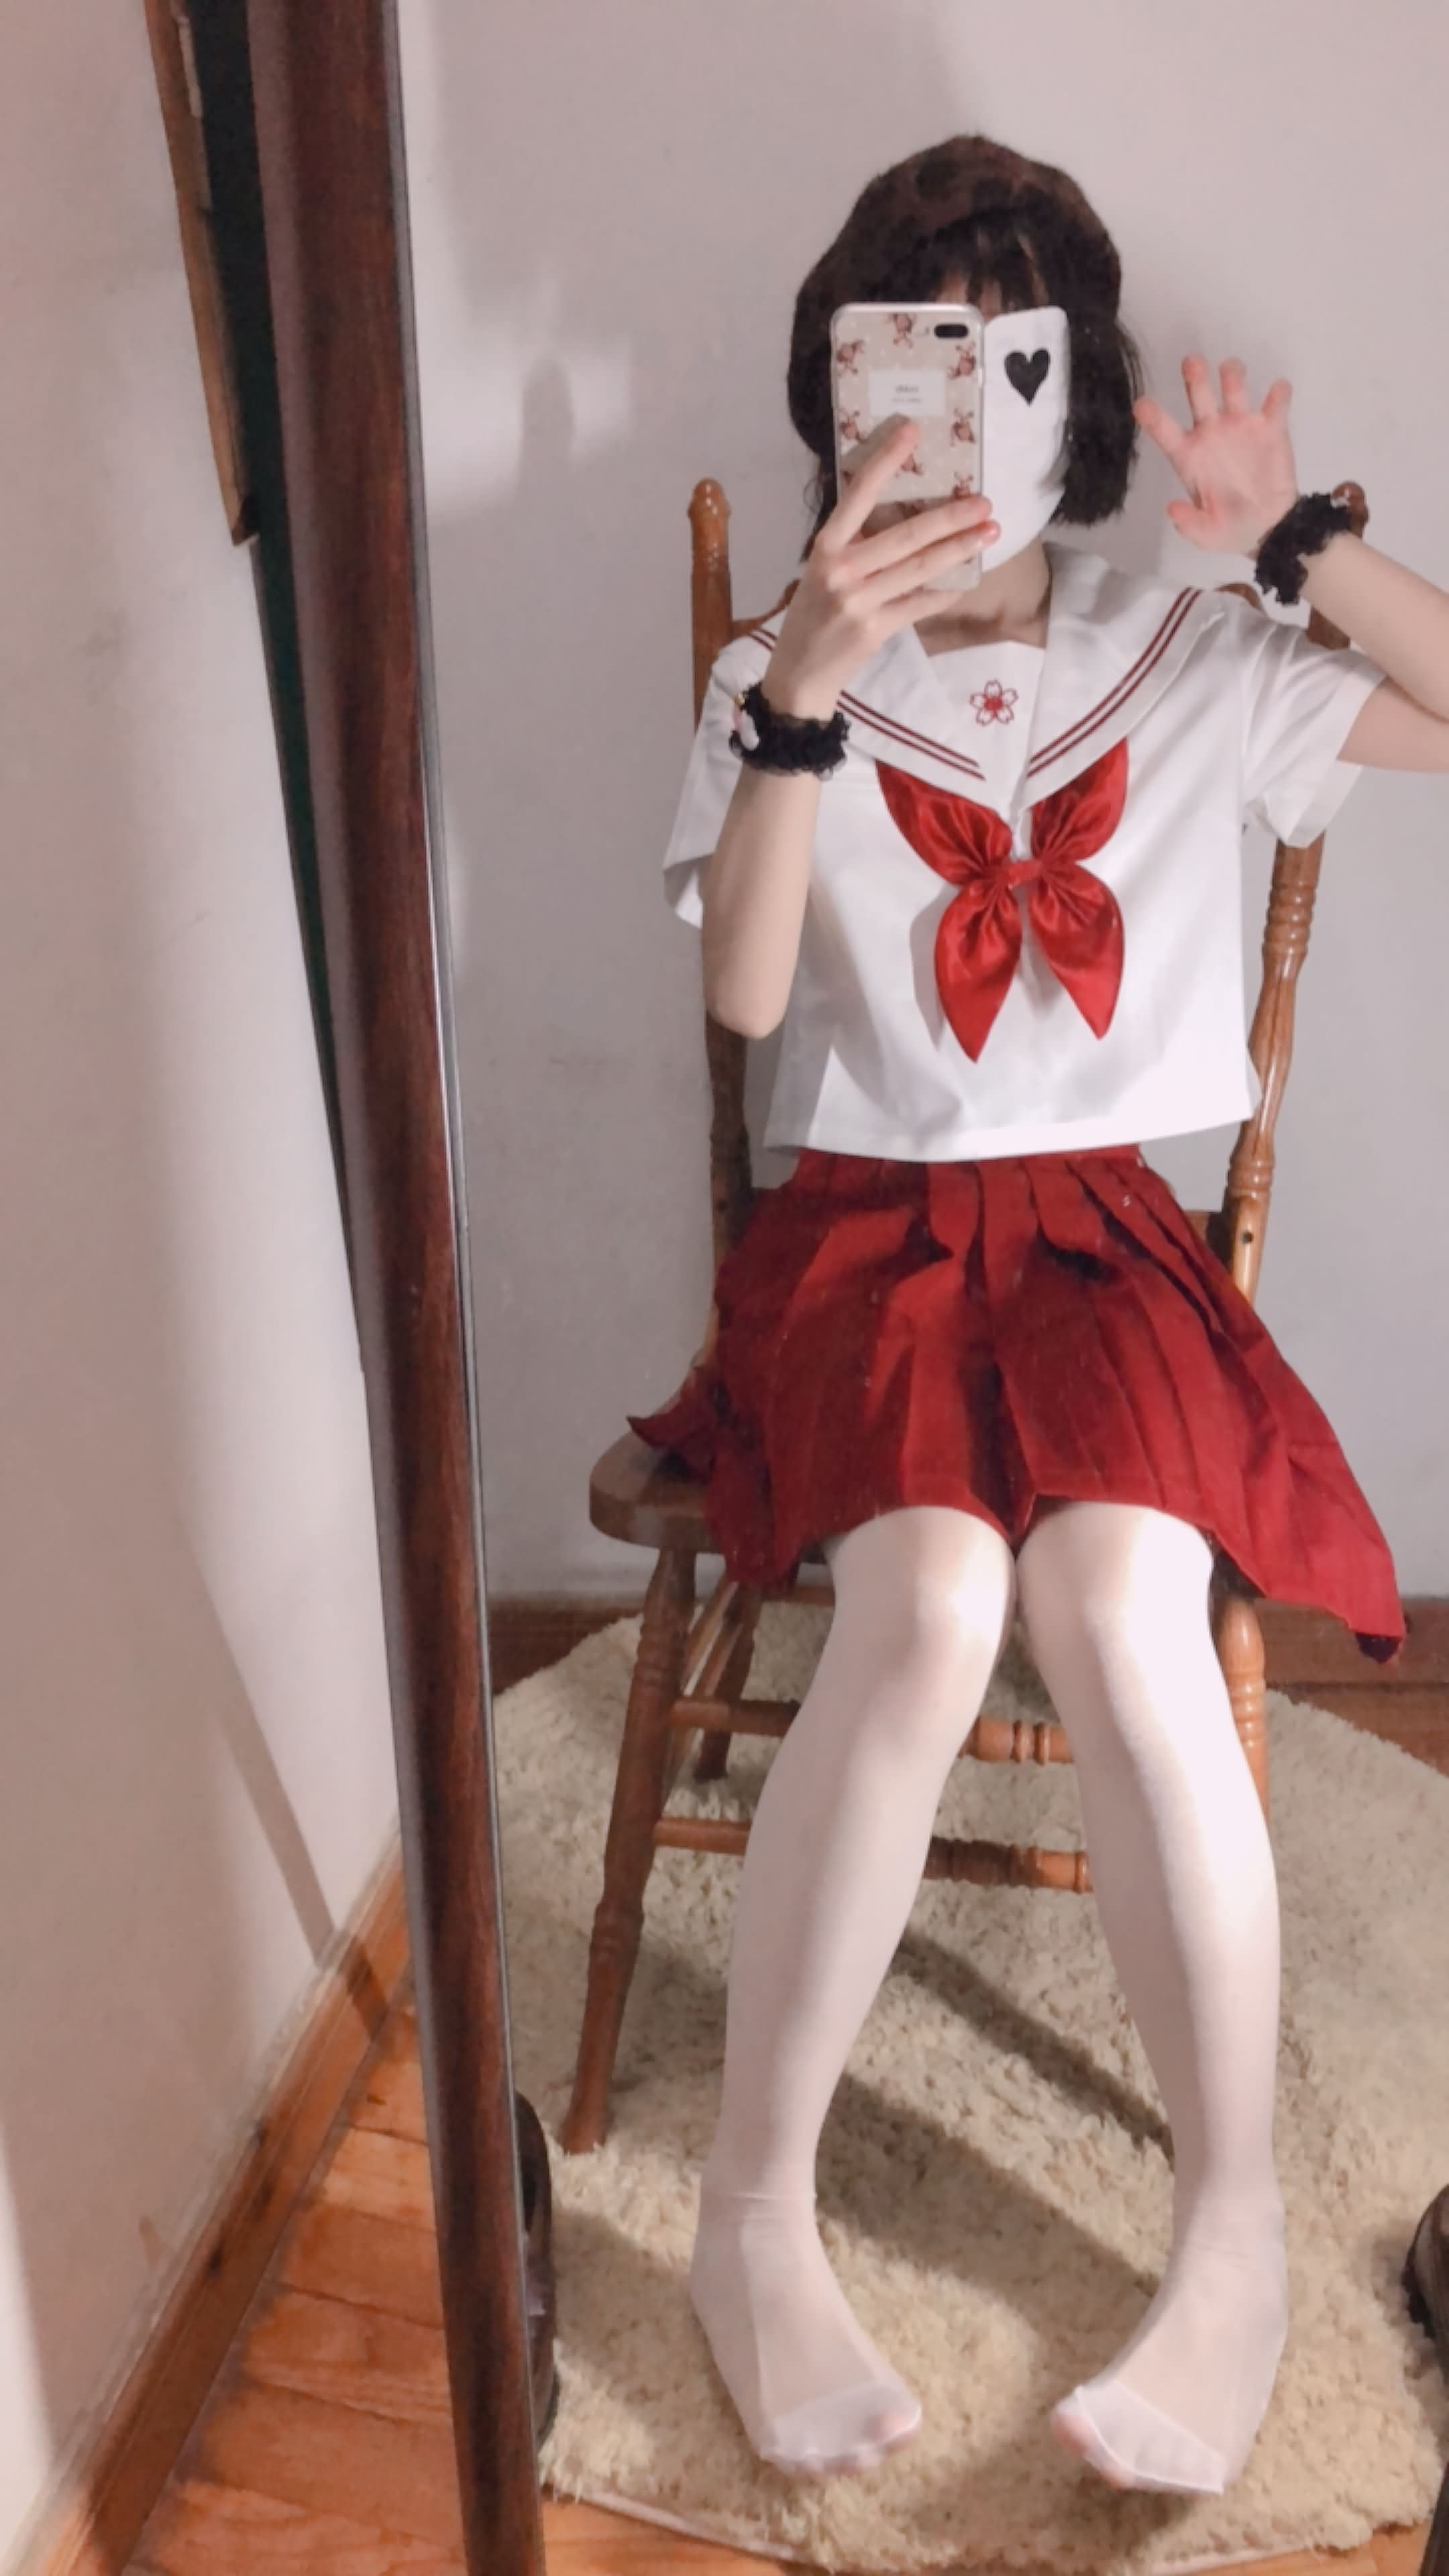 05 - Cosplay red JK uniform white stockings sweet pussy butt 小结巴-红色jk制服白丝 95P